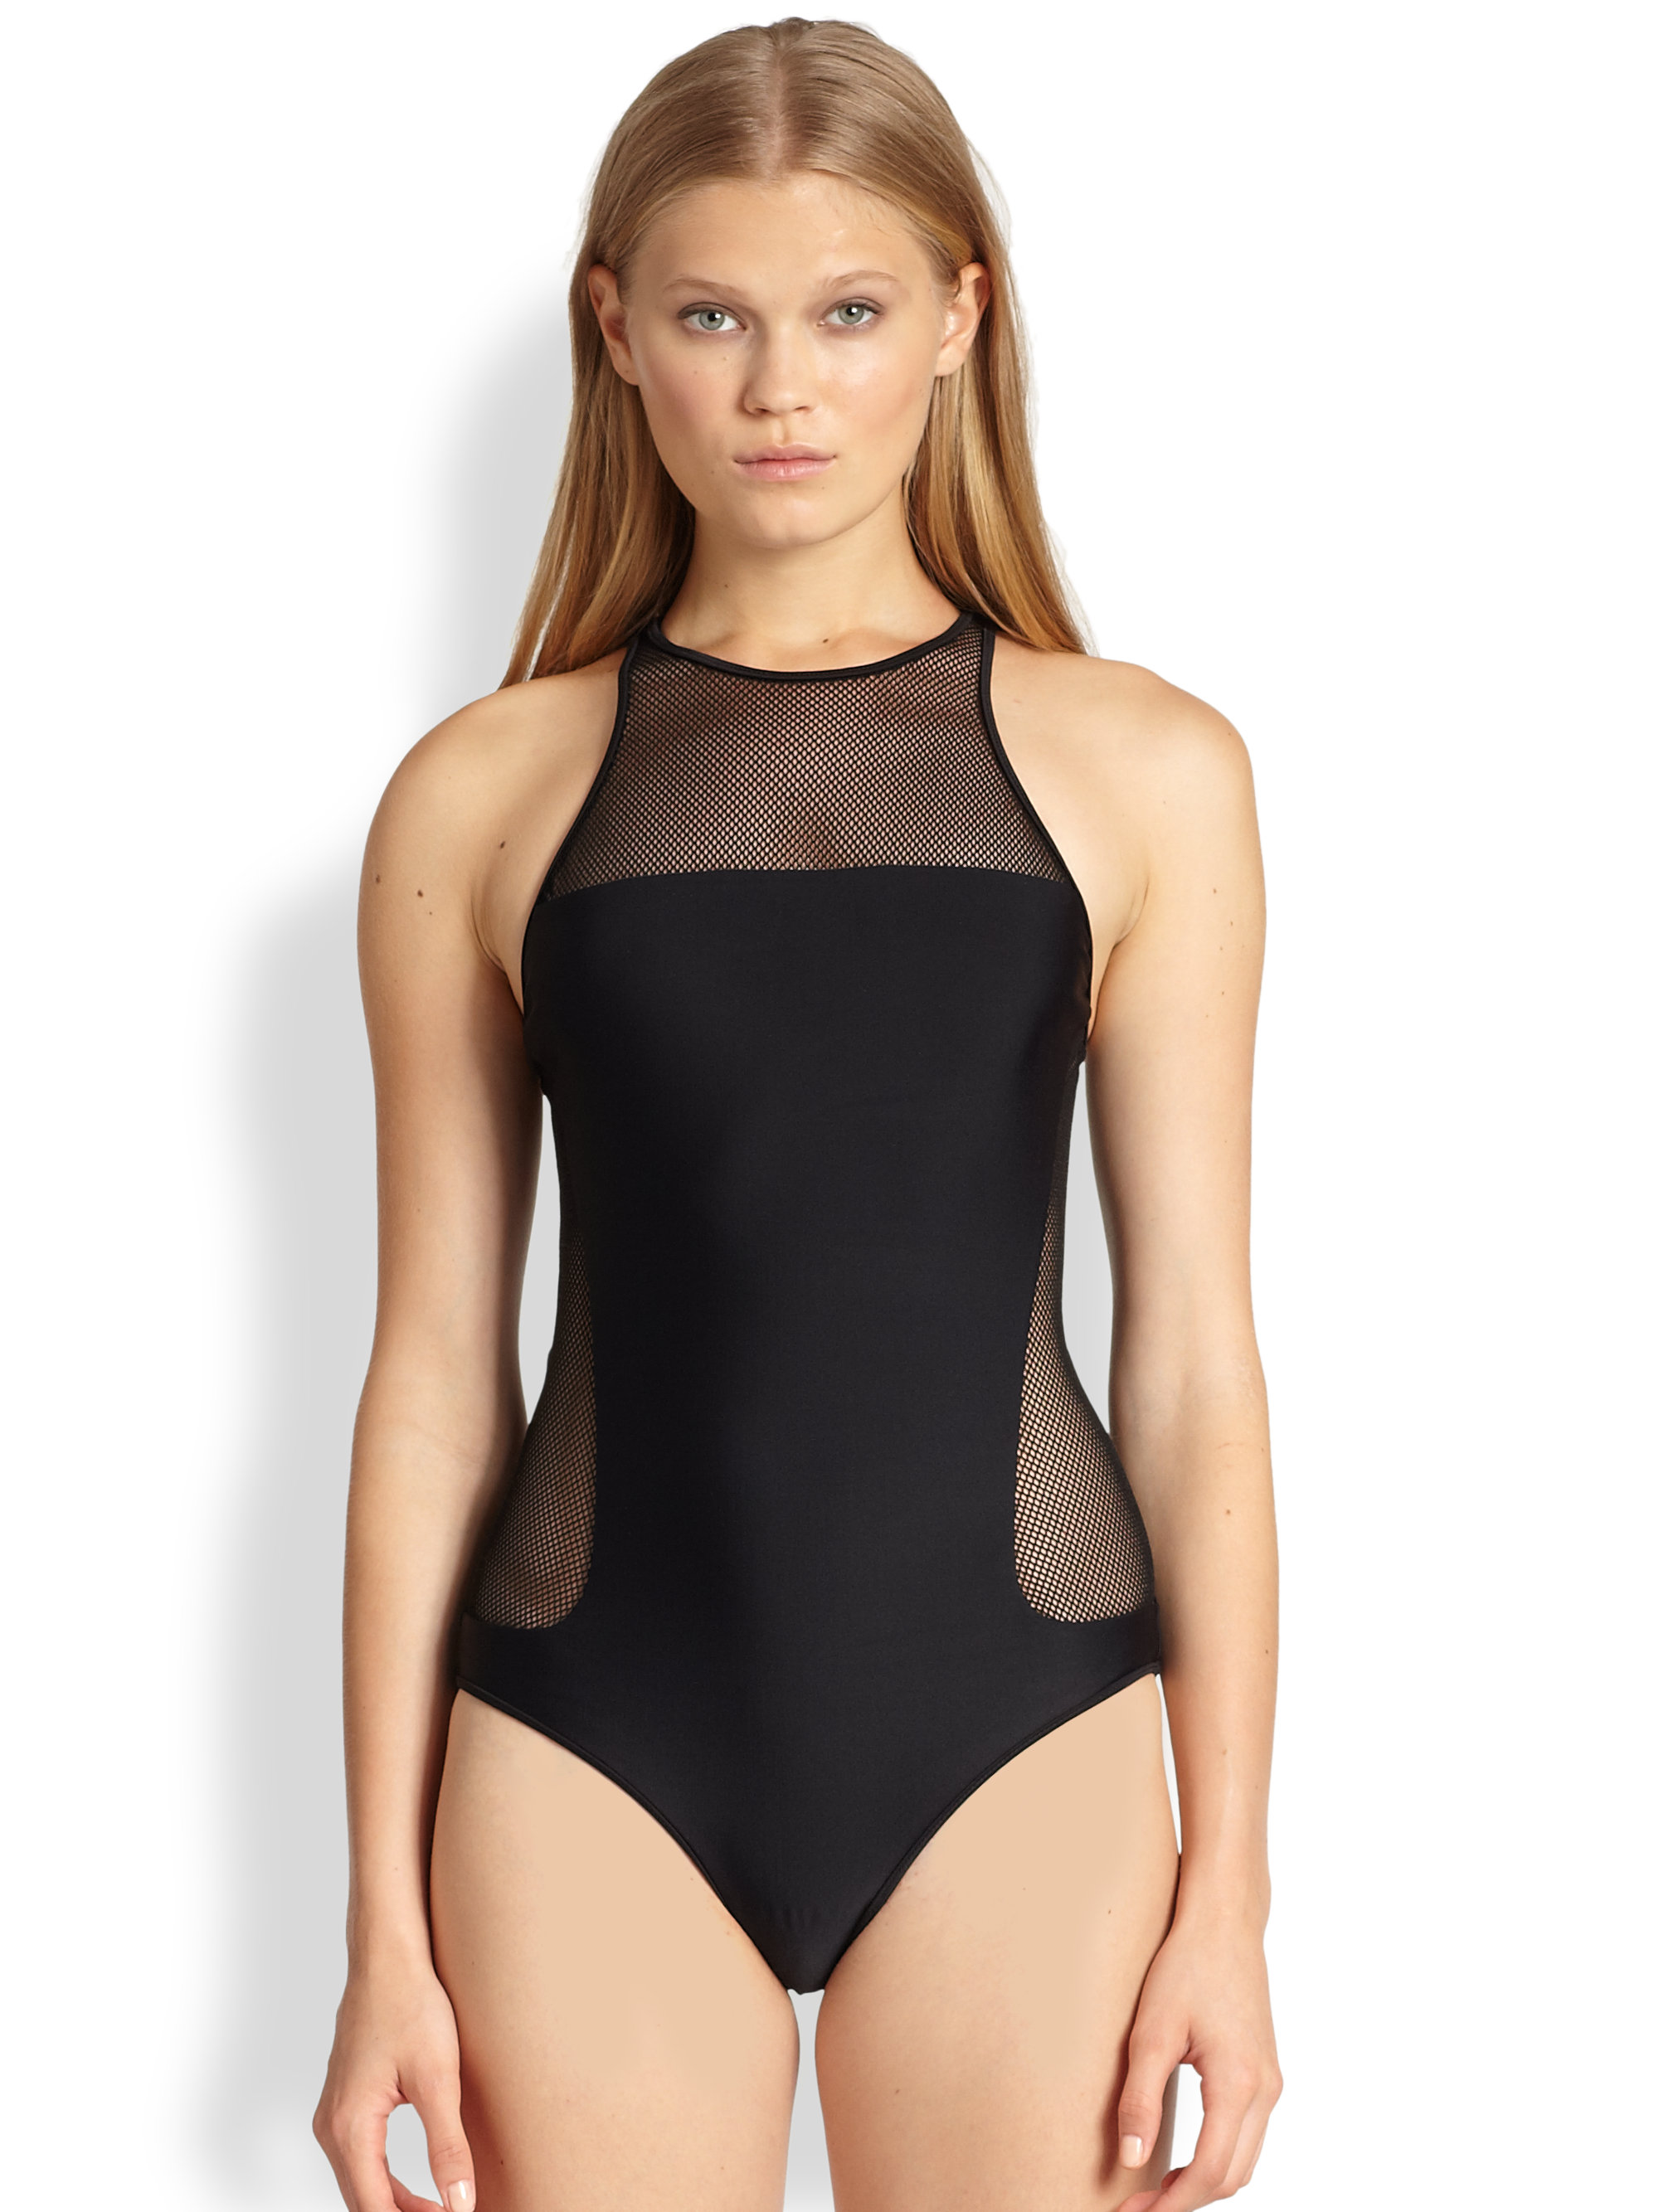 A two-piece suit is a cute alternative to the classic one-piece. Mix and match different tops and bottoms to create the right plus size swimsuit for you. Show off your shoulders in a high-neck or halter-style tankini top. Add a pair of bikini bottoms or swim skirt to complete the look.